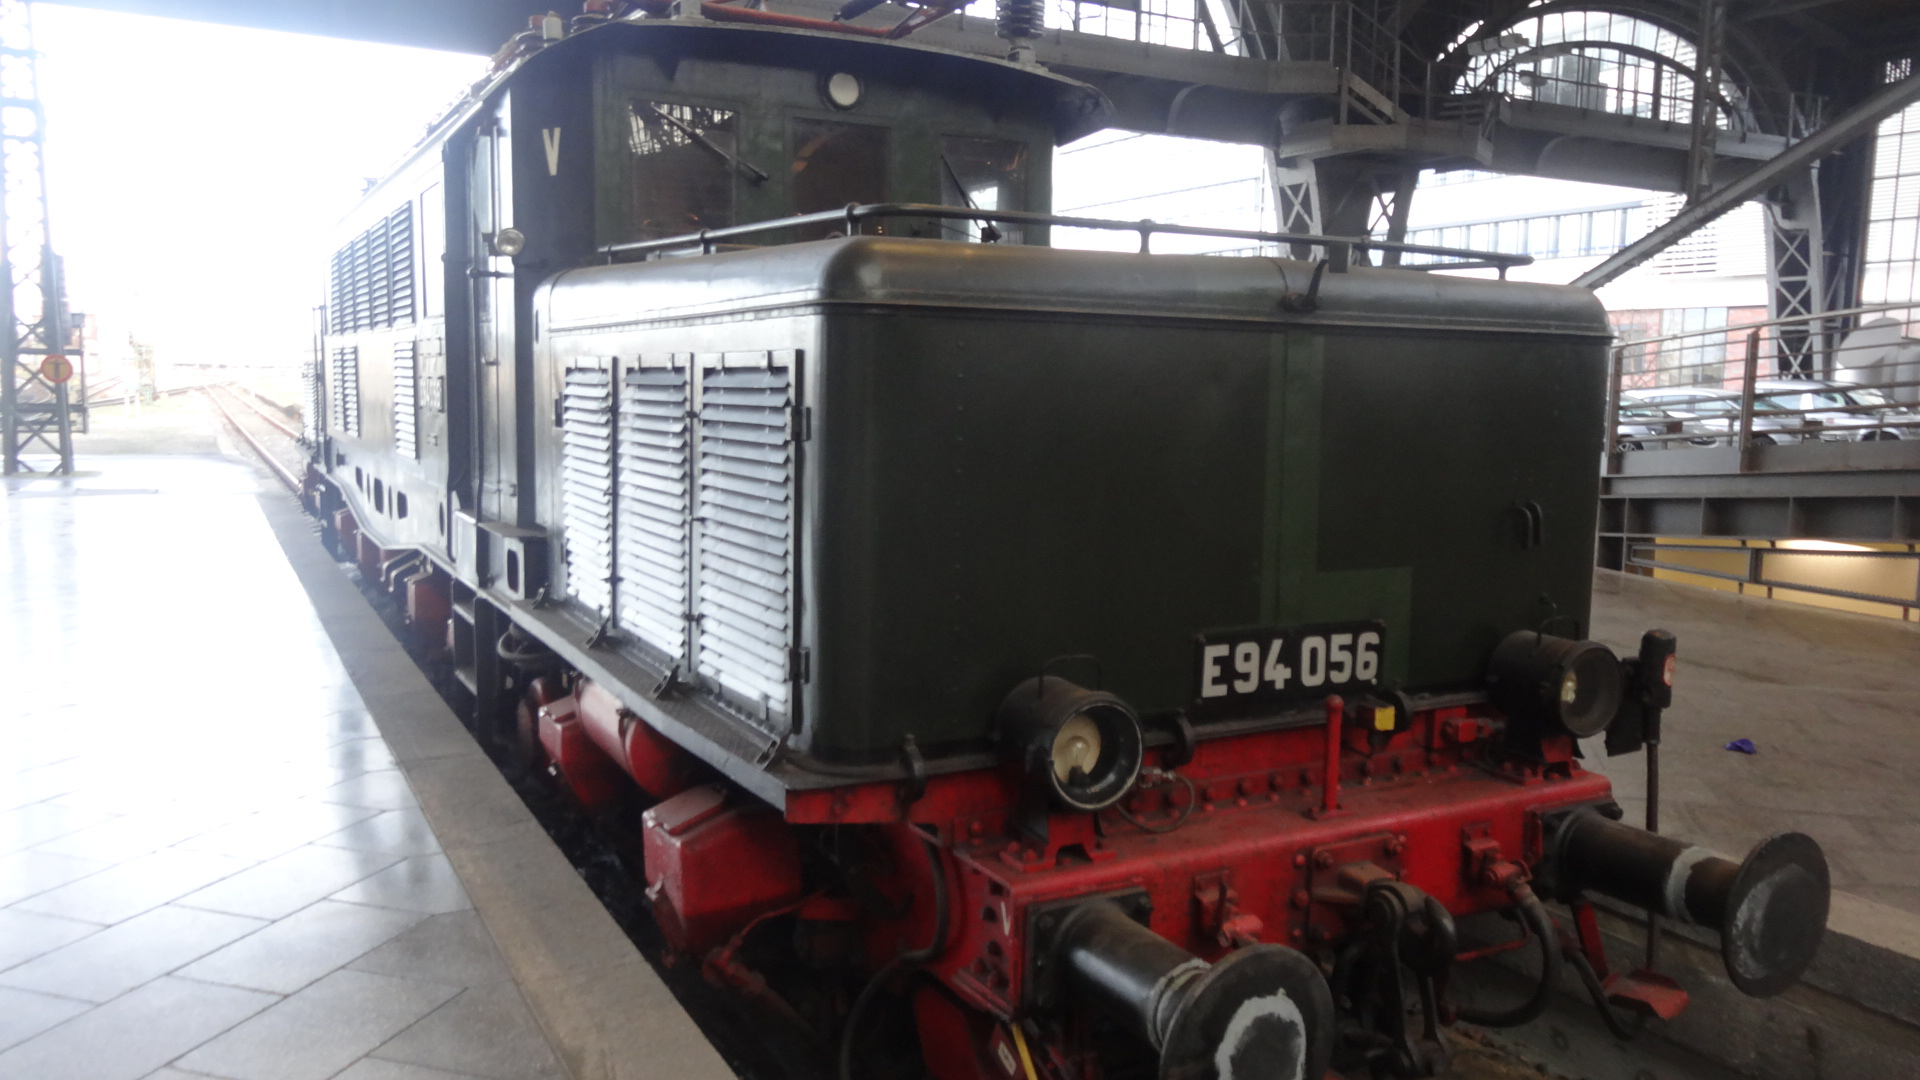 historic electronic locomotive E94-056